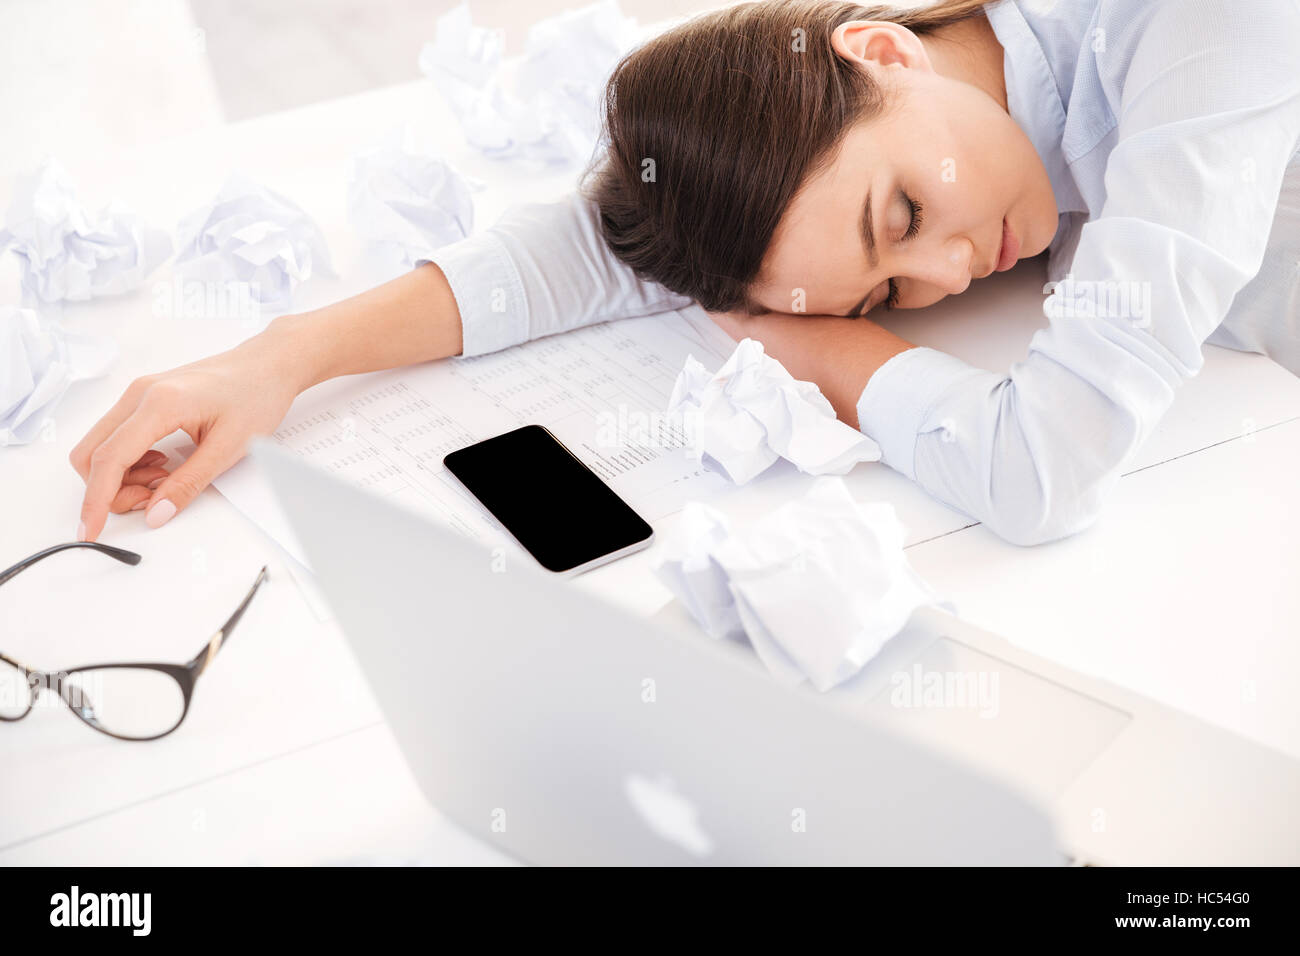 Photo of tired woman at office desk sleeping with eyes closed, sleep deprivation and stressful life concept - Stock Image